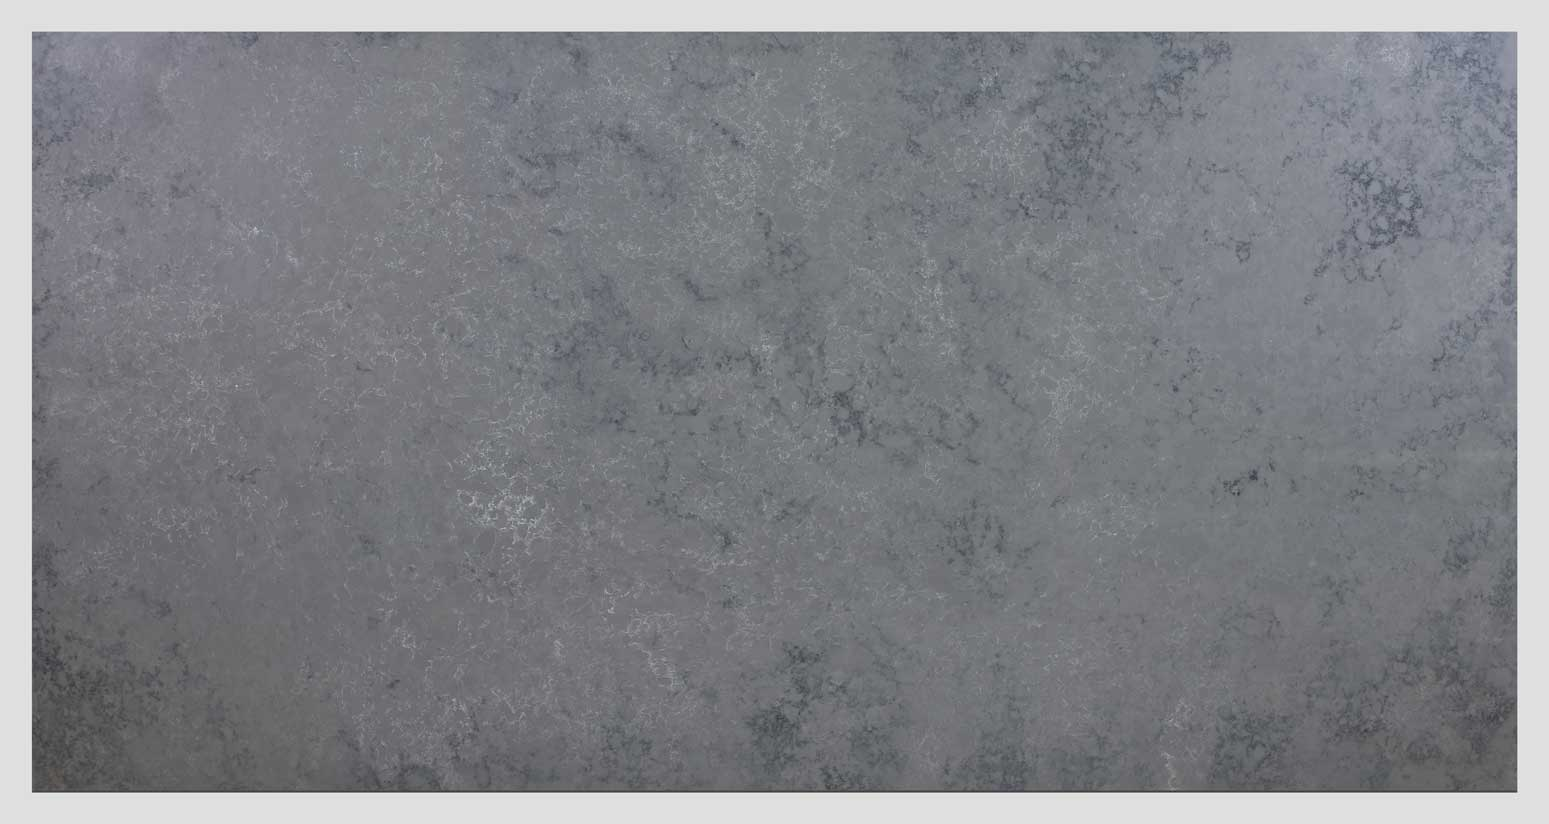 Astro Grey Quartz Countertops